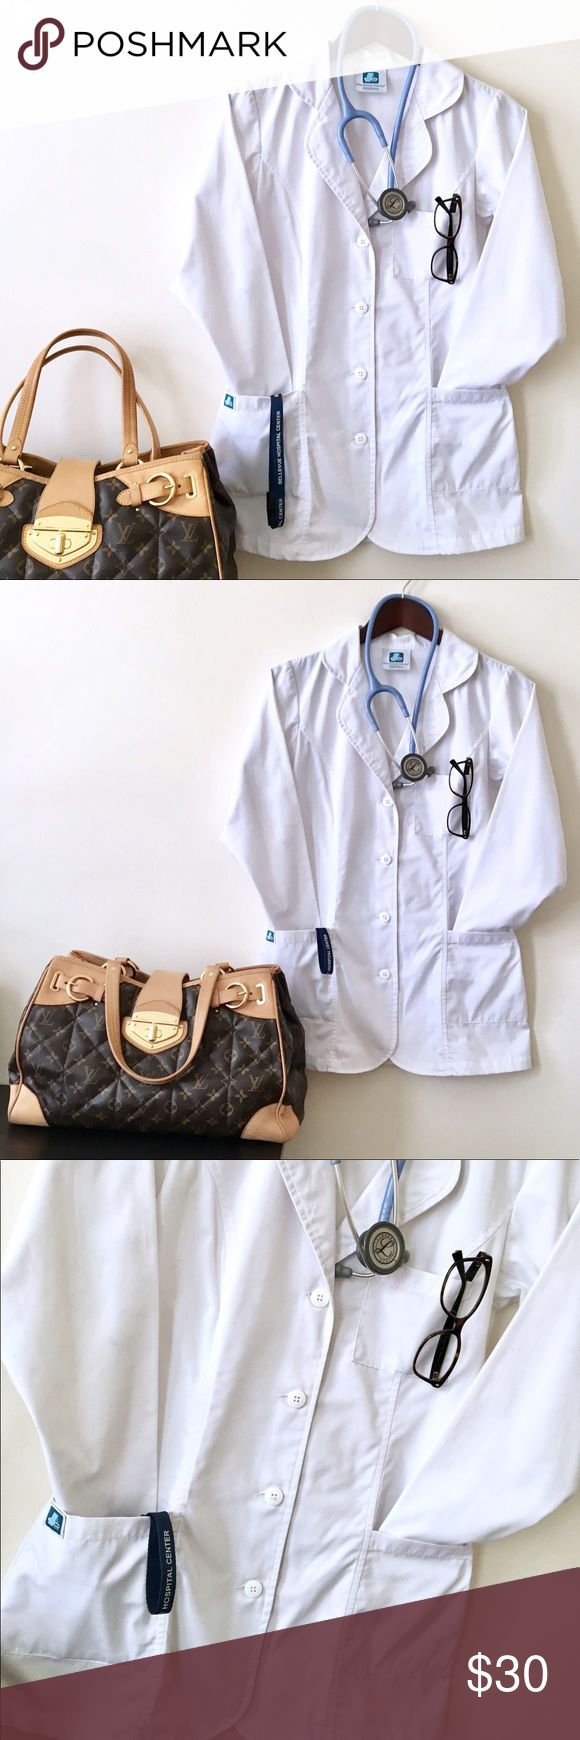 XXS White Lab Coat Bundle of 2! Perfect 4 Petites! EUC Size XXS White Lab Coat Bundle of 2! Perfect for Petites! I'm really crazy about how perfect my lab coats are so I go through a few every month. I found that most are huge on me out but these XXS coats are perfection. These have been used in the clinical setting so they aren't new but they are clean, bleached and washed in hot water. Great for nursing/med students with clinical rotations or bio majors with labs that require coats…